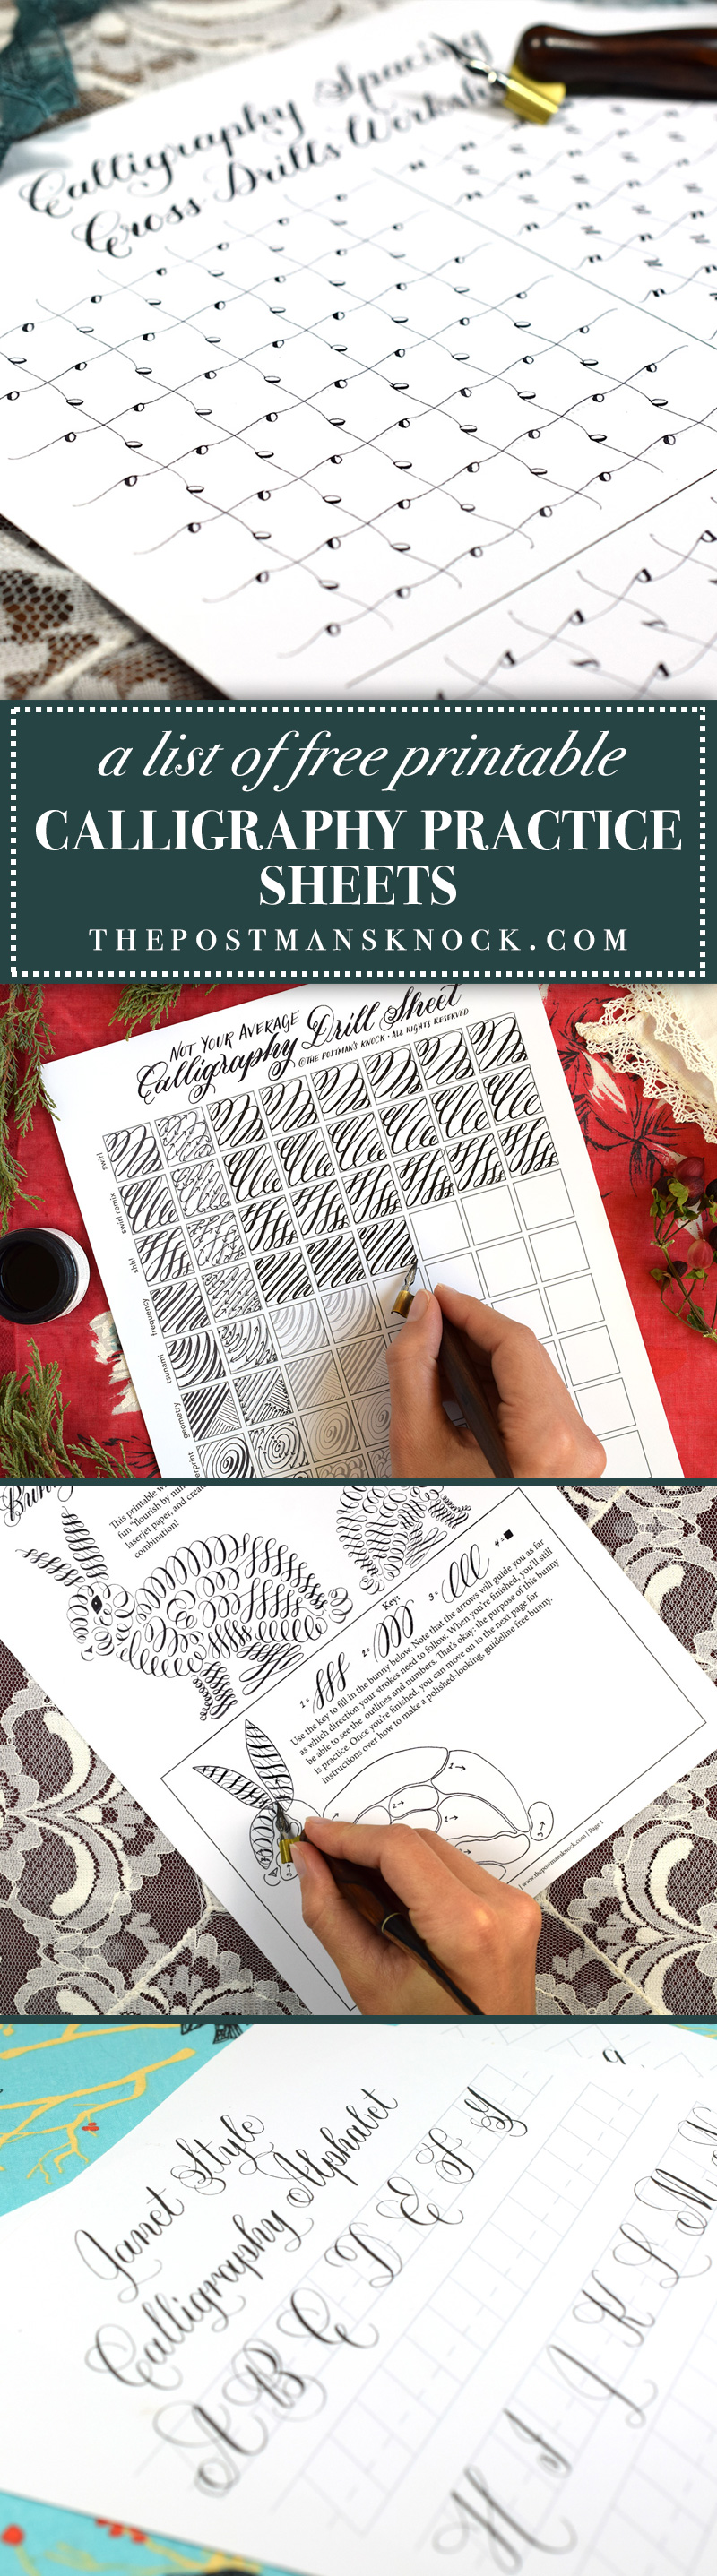 A List of TPK's Free Printable Calligraphy Practice Sheets | The Postman's Knock